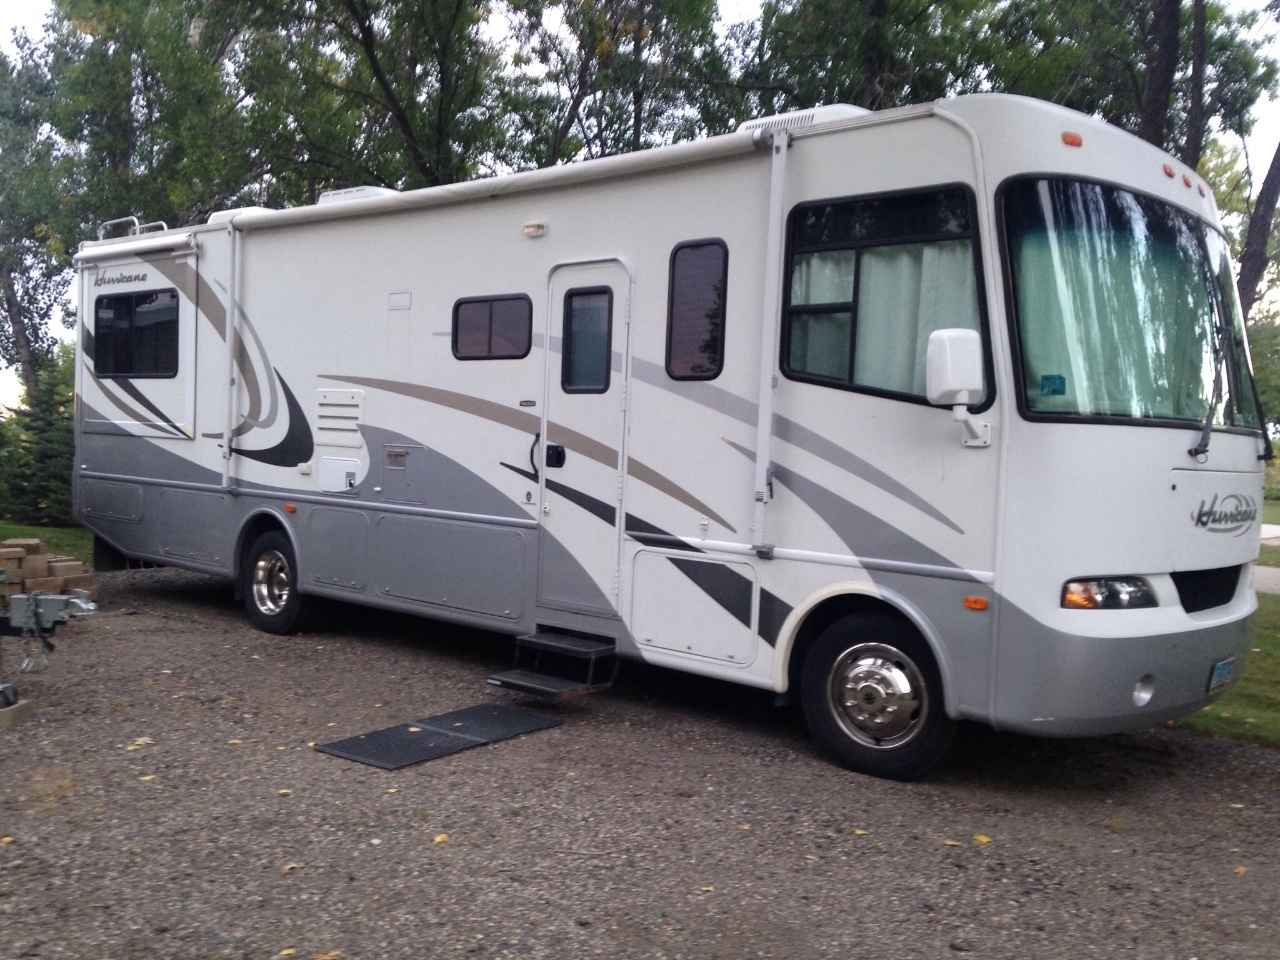 Recreational Vehicle (RV) Sector: Forecast until 2022 in North America